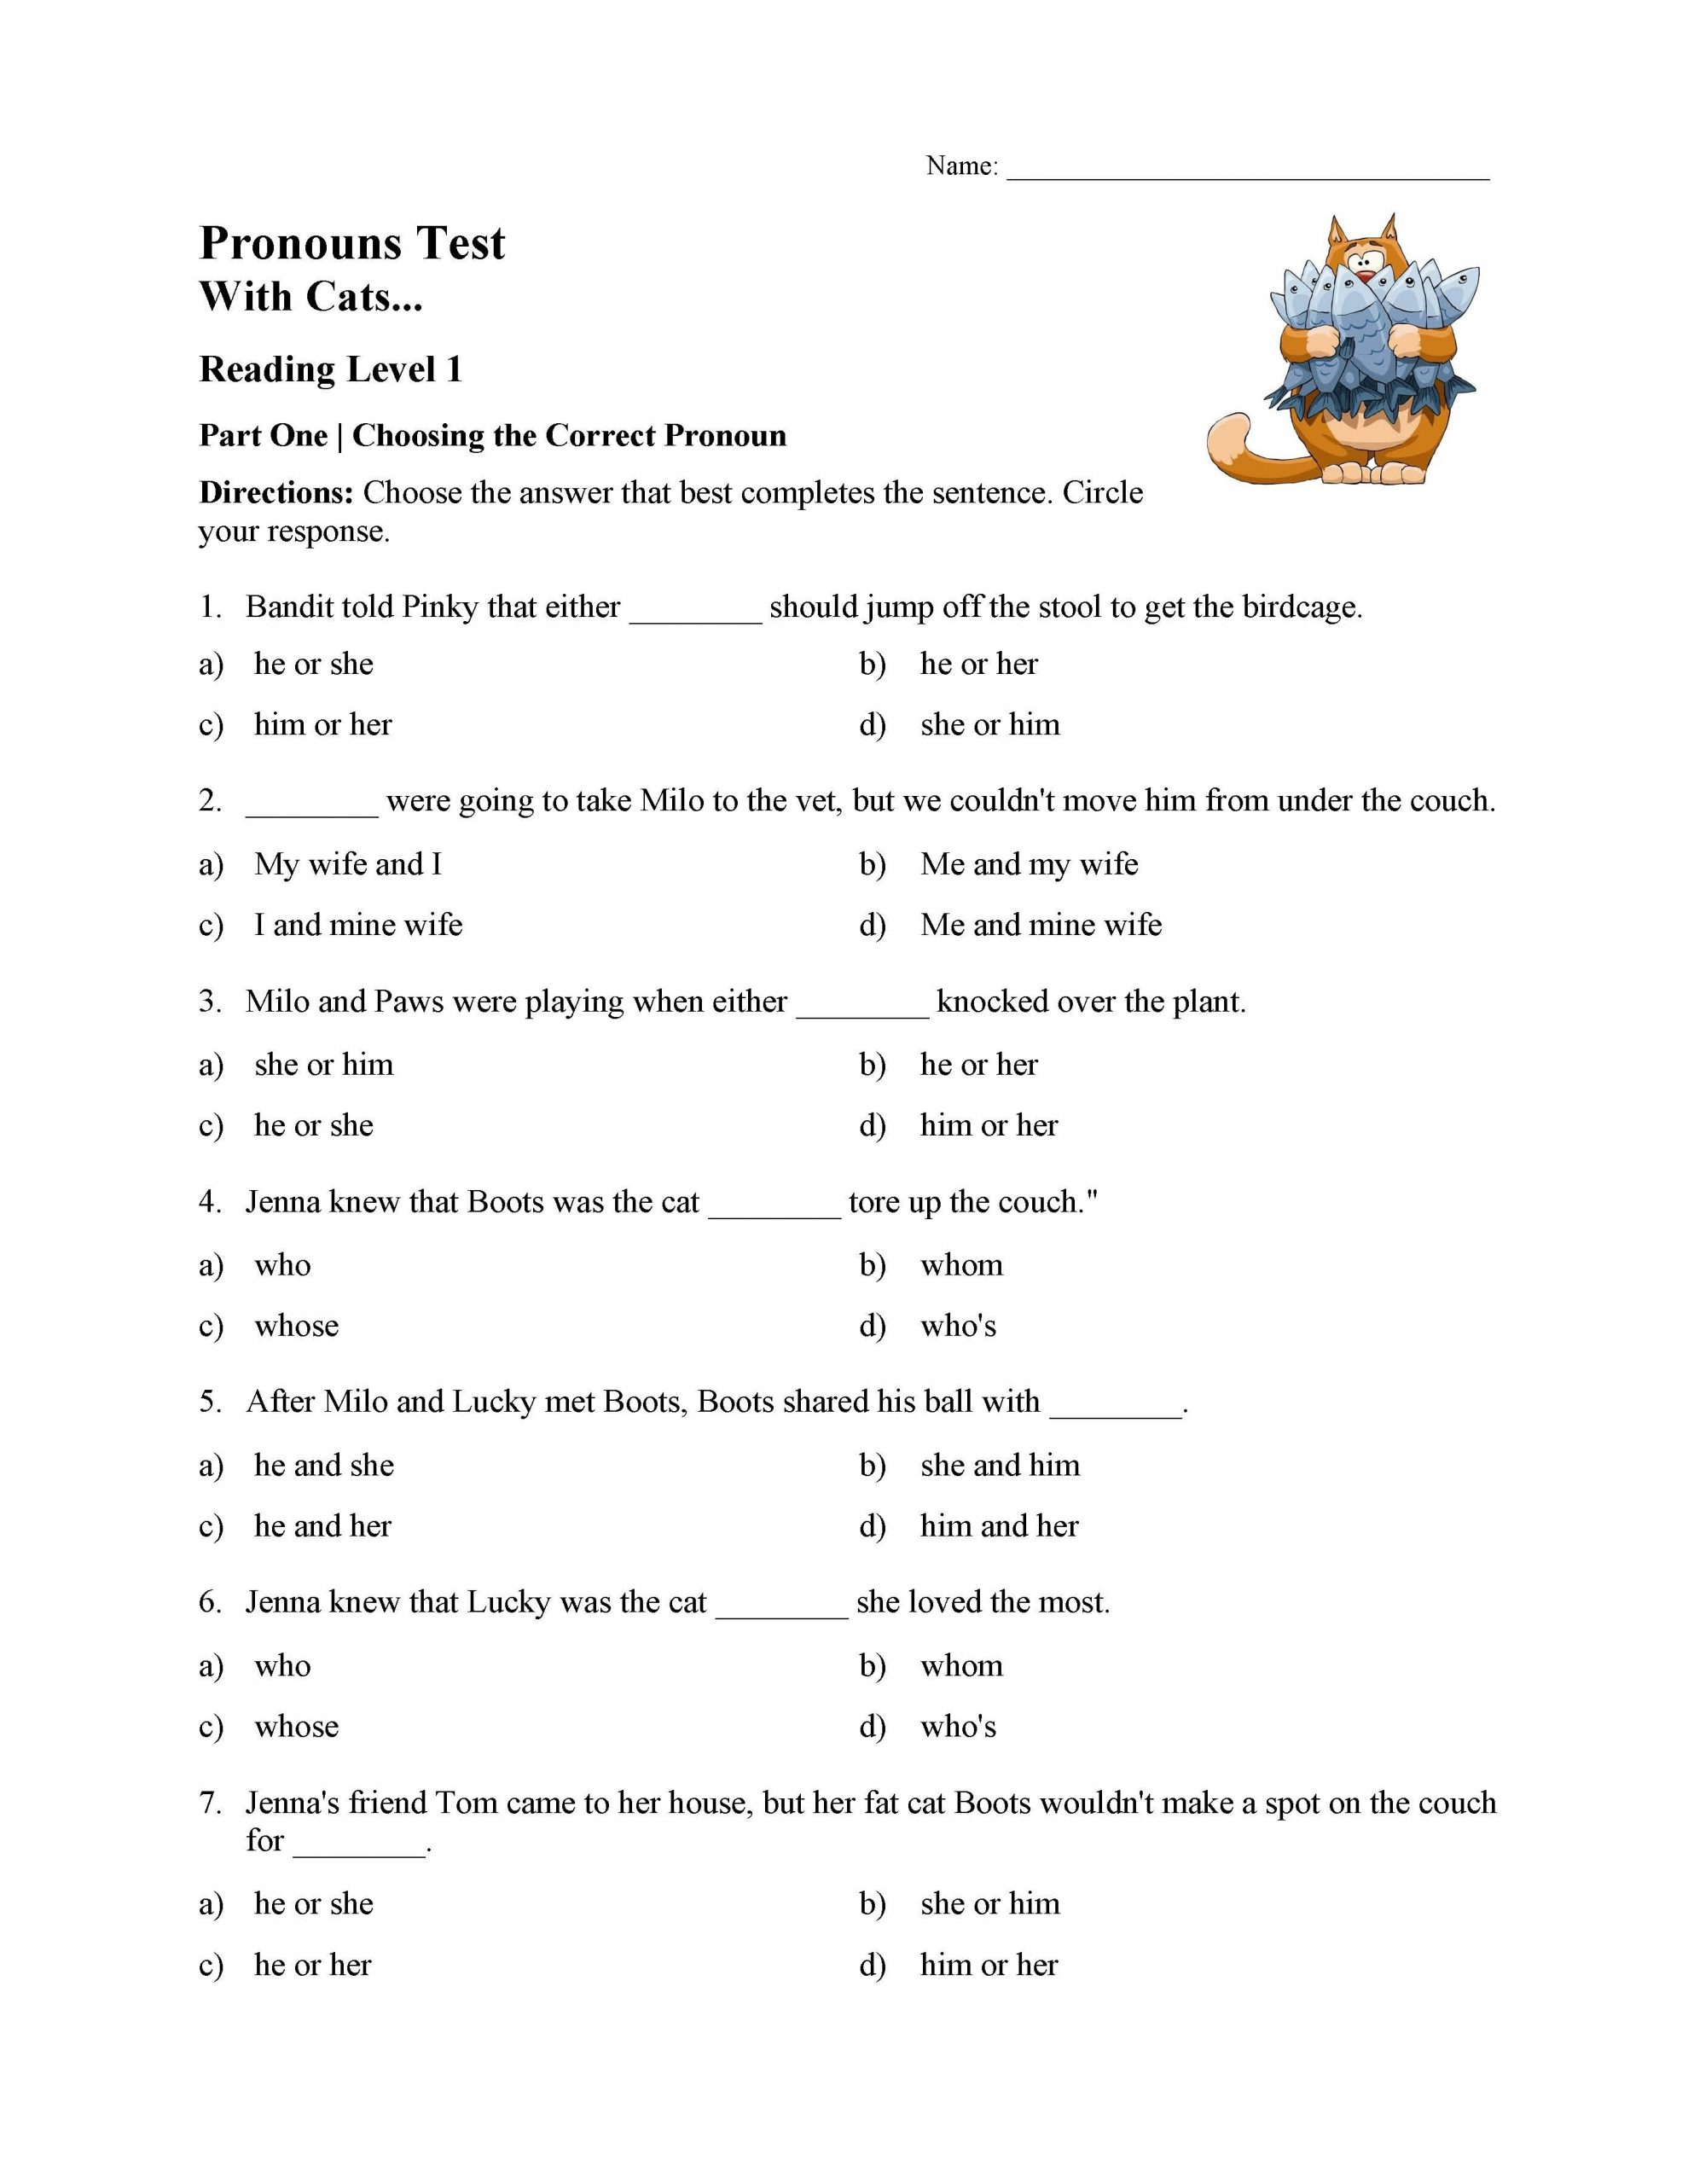 Pronoun Worksheets 5th Grade Pronouns Test with Cats Reading Level 1